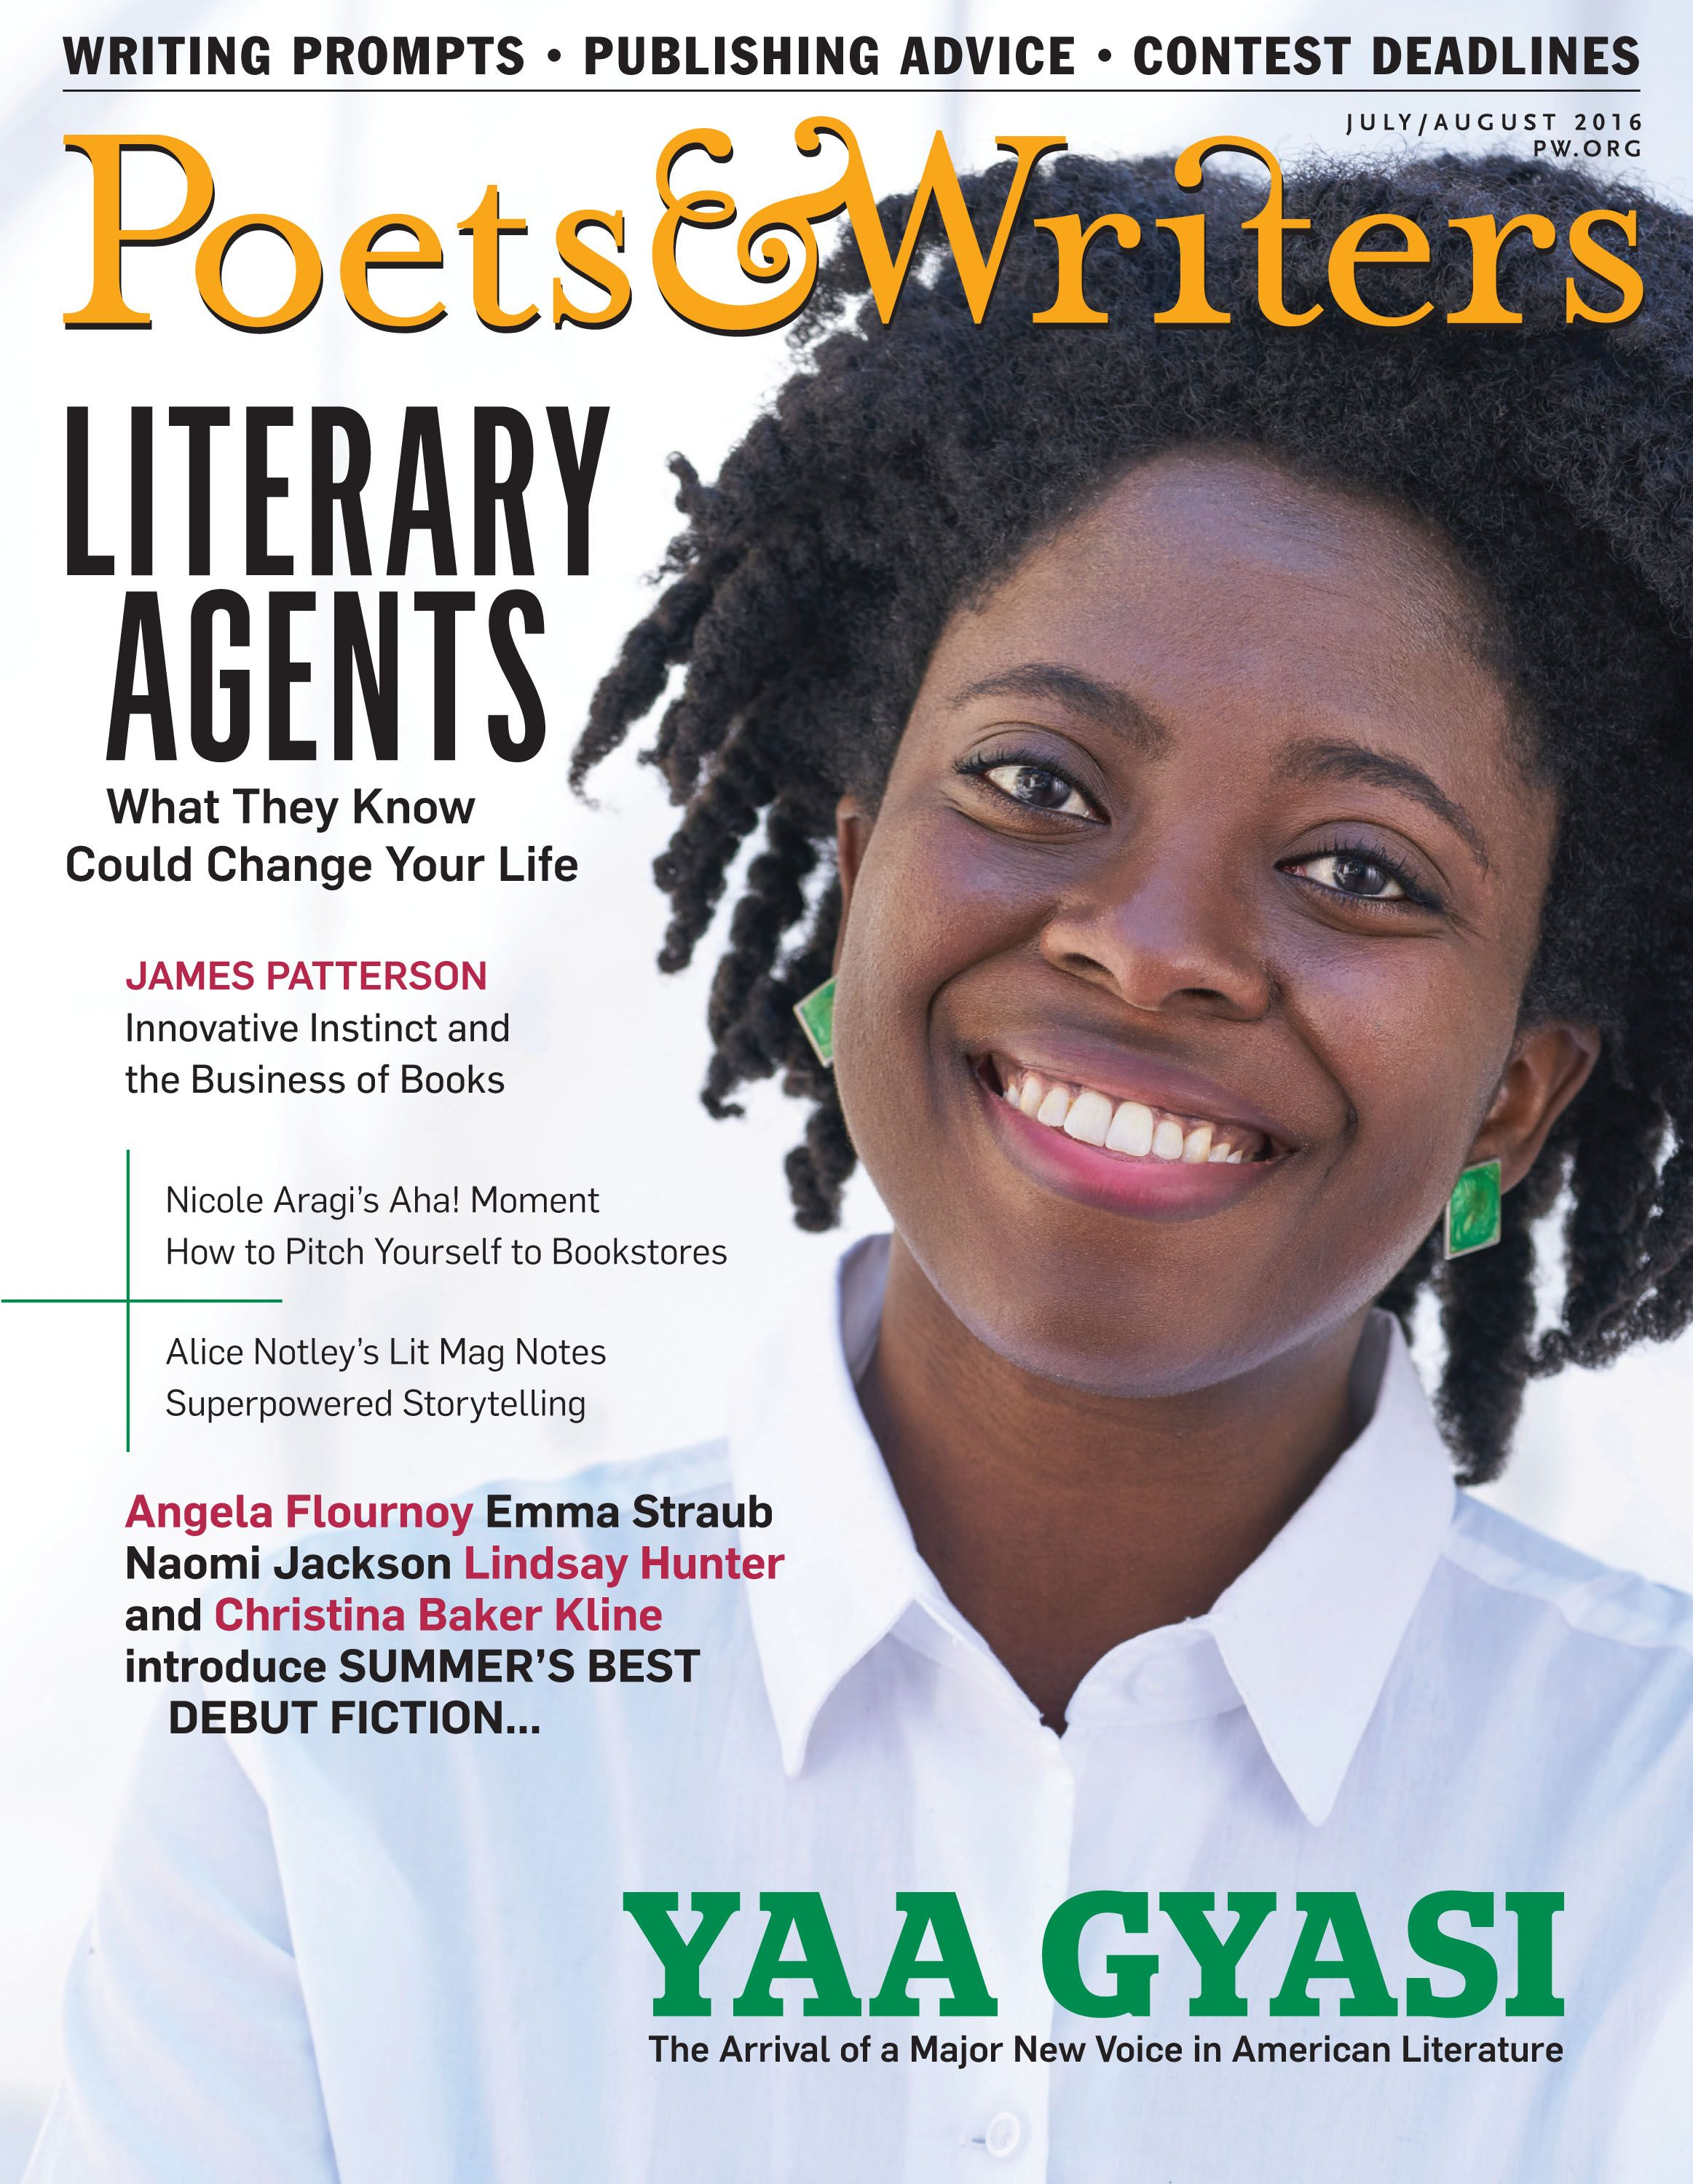 Poets and writers agents